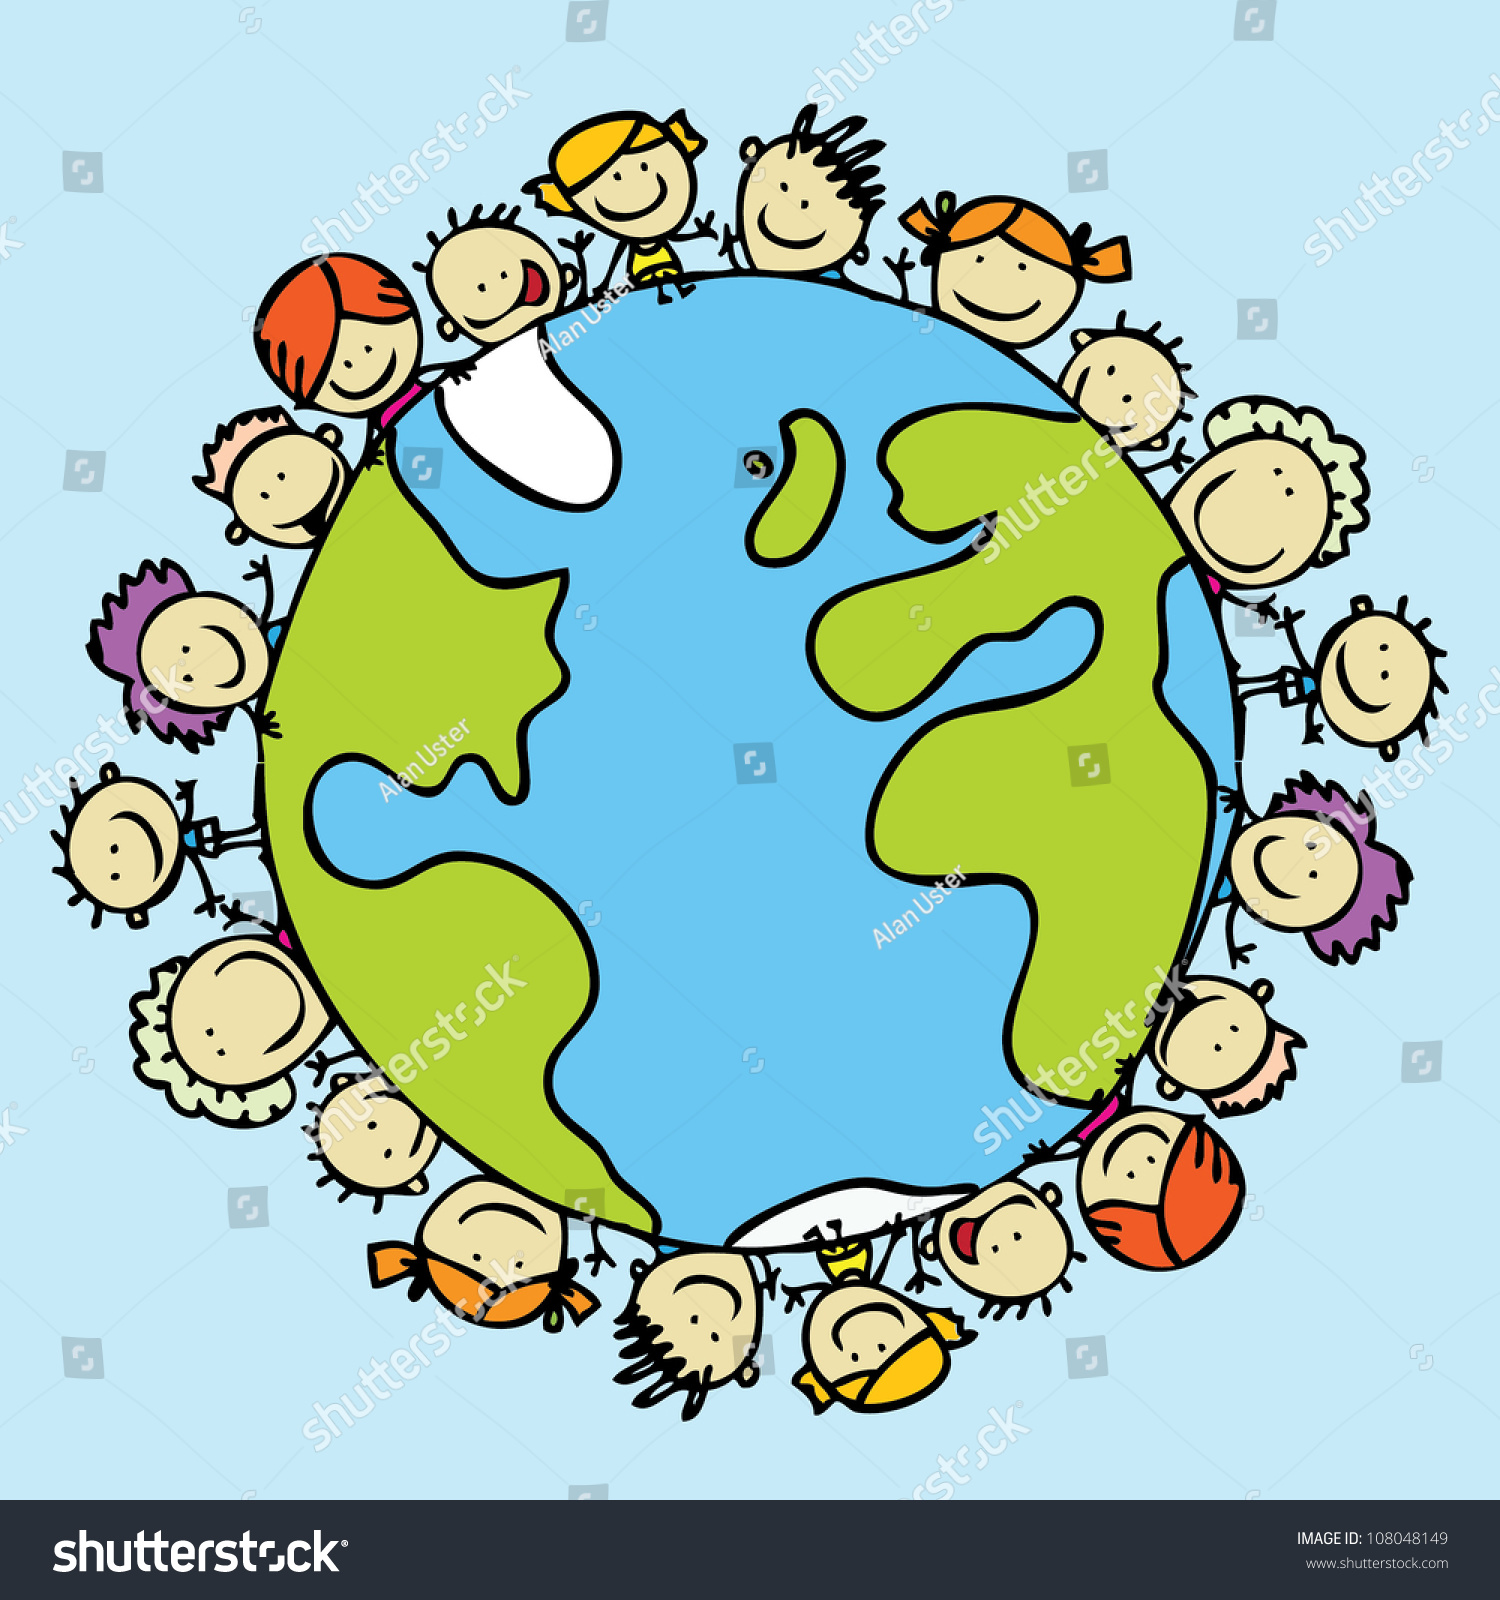 Planet Earth Drawing Children Kids Around The World Together Save